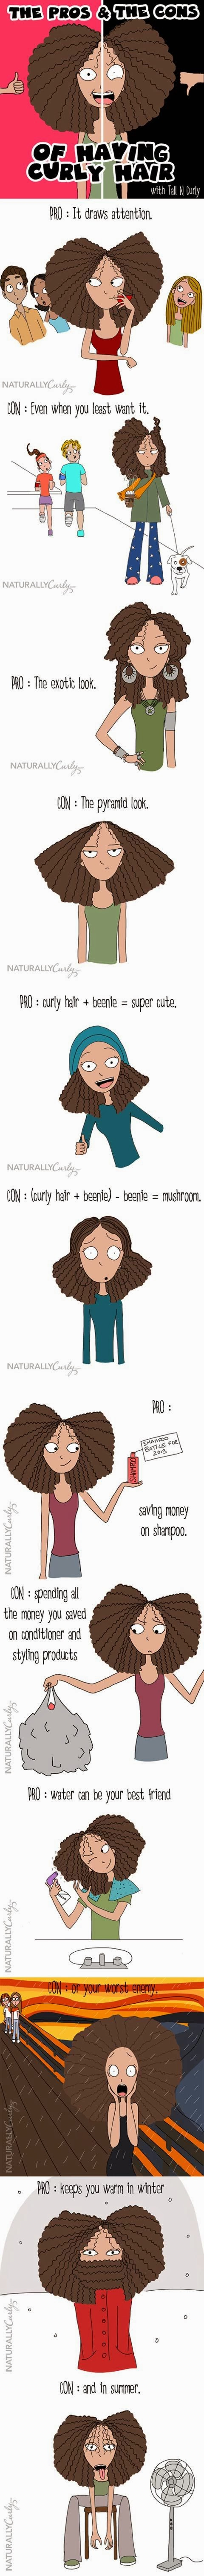 Straight hair perms pros and cons - Curly Hair Pros And Cons